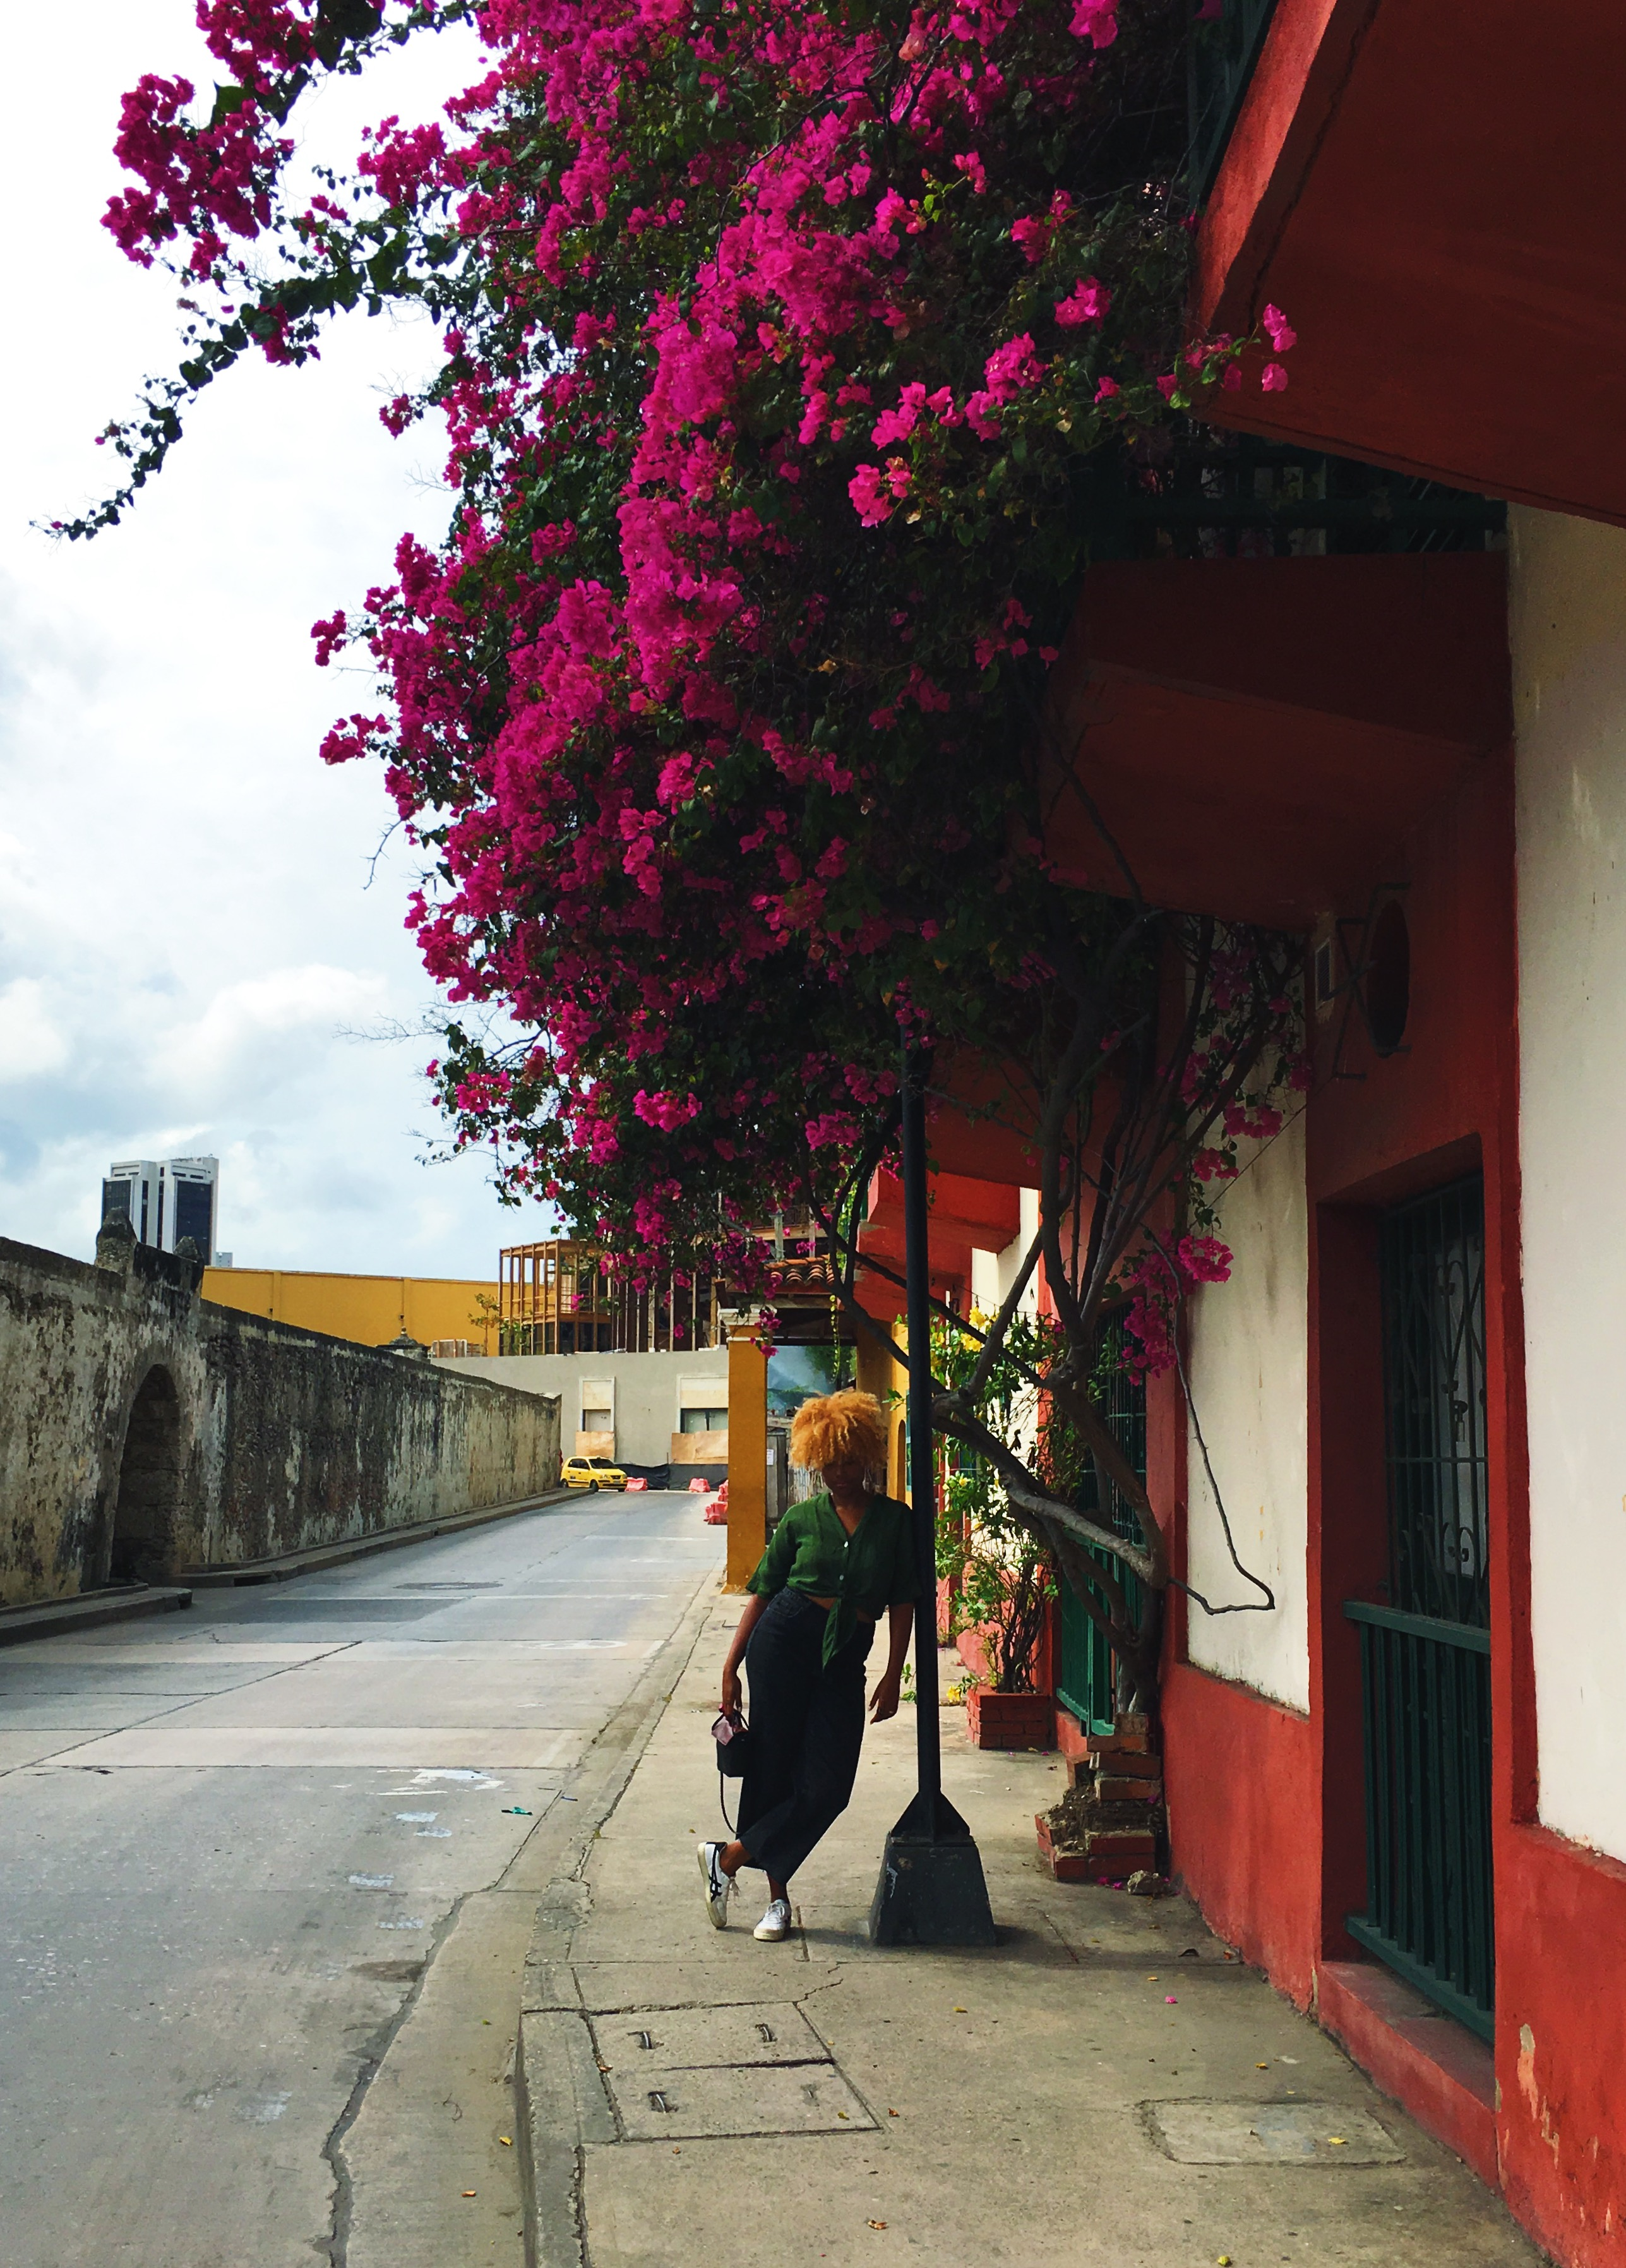 lcm-liveclothesminded-cartagena-colombia-walled city